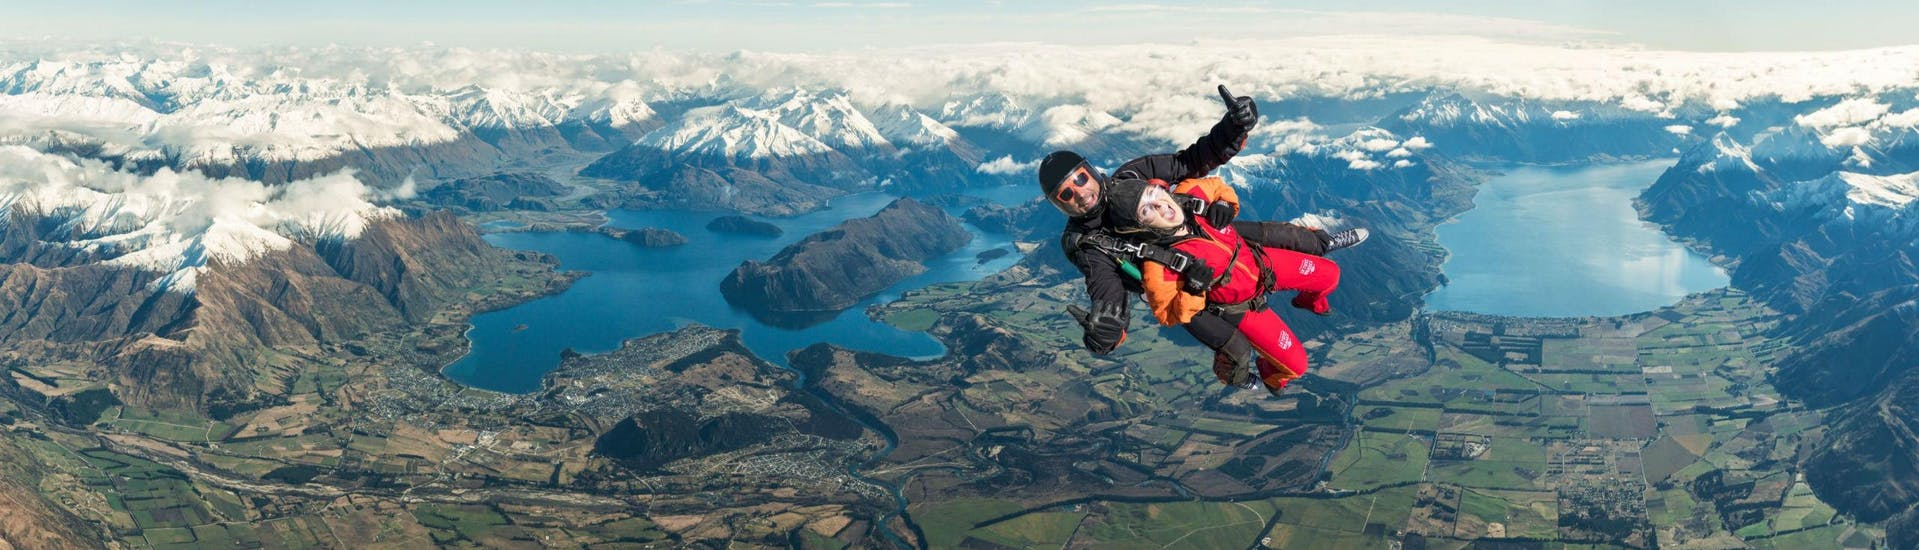 A tandem master from Skydive Wanaka and his passenger are in the middle of their Tandem Skydive in Wanaka - 12,000ft, above the spectacular mountainscape around Lake Wanaka.